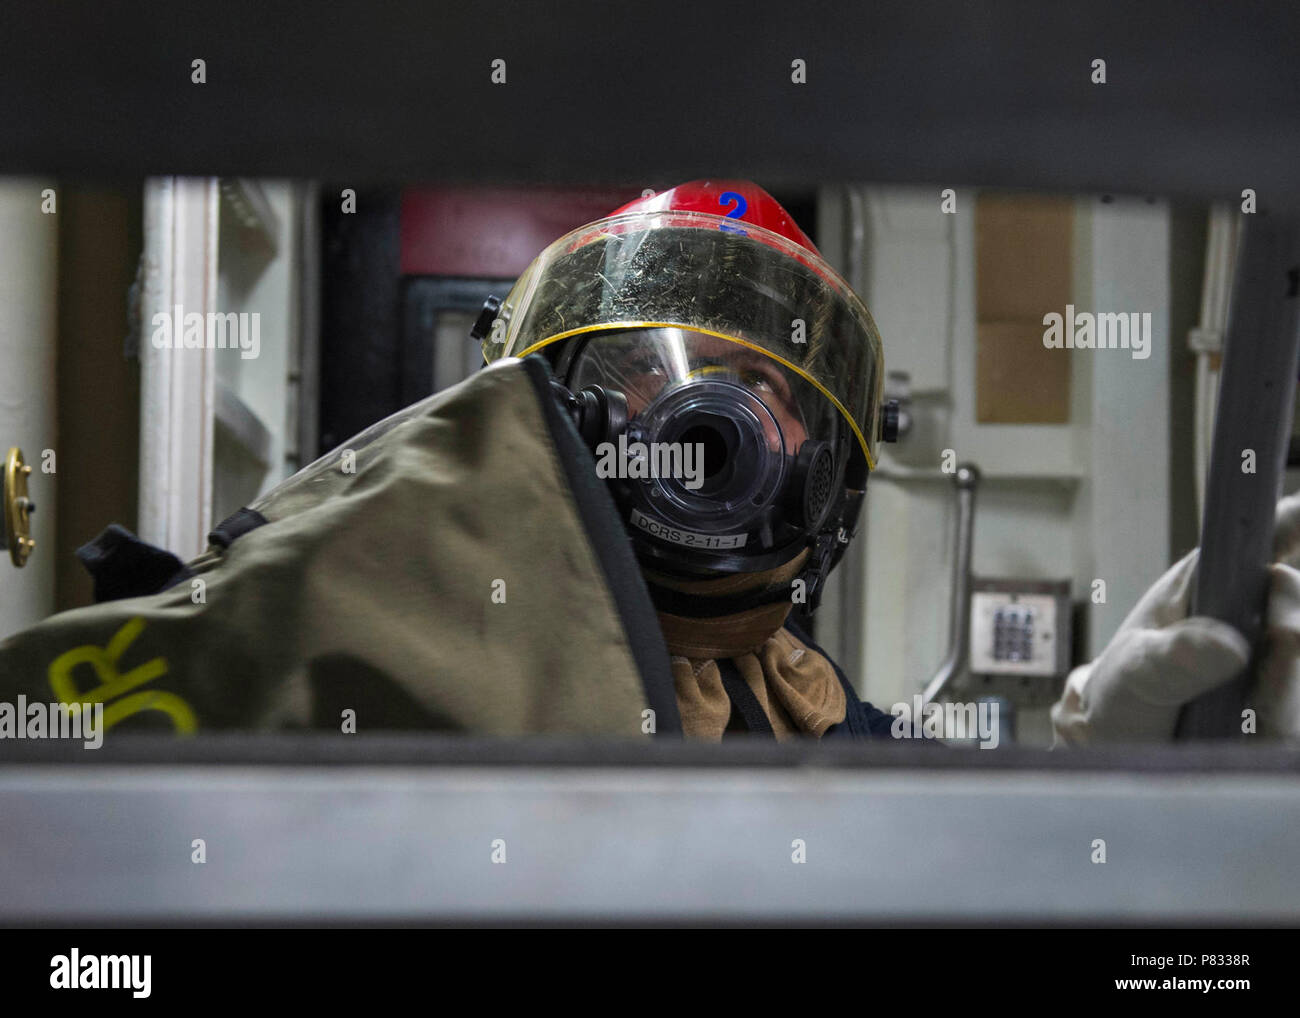 PHILIPPINE SEA (November 28, 2016) Petty Officer 2nd Class Cole Ashdown inspects a compartment for potential hazards during a damage control drill aboard the Arleigh Burke-class guided-missile destroyer USS Mustin (DDG 89). Mustin is on patrol in the U.S. 7th Fleet area of responsibility in support of security and stability in the Indo-Asia-Pacific region. Stock Photo